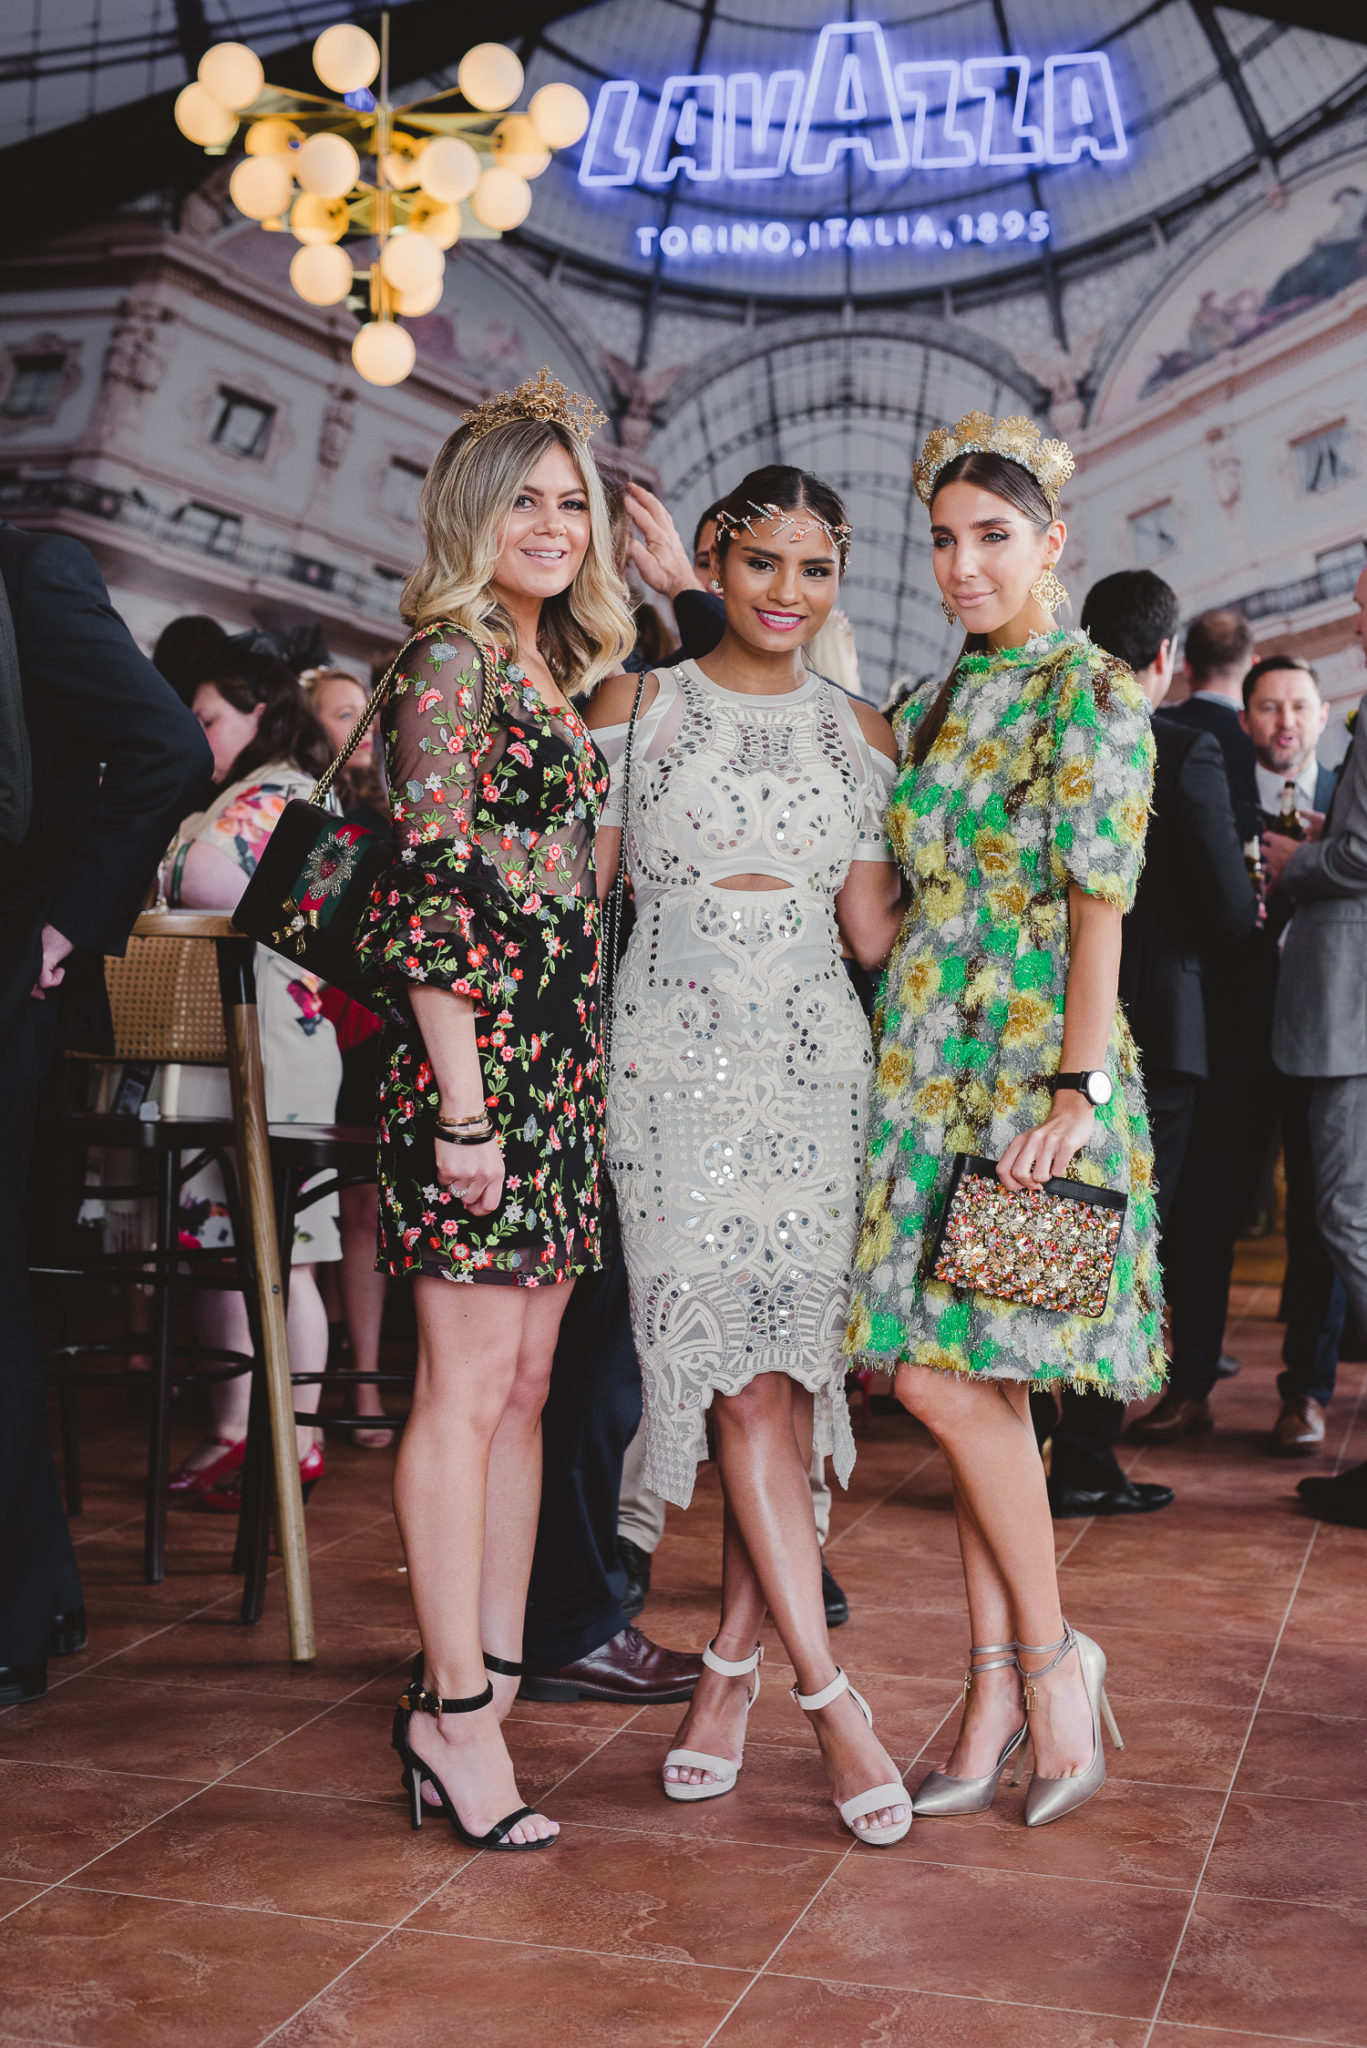 melbourne-cup-day-lavazza-whatwouldkarldo_0016